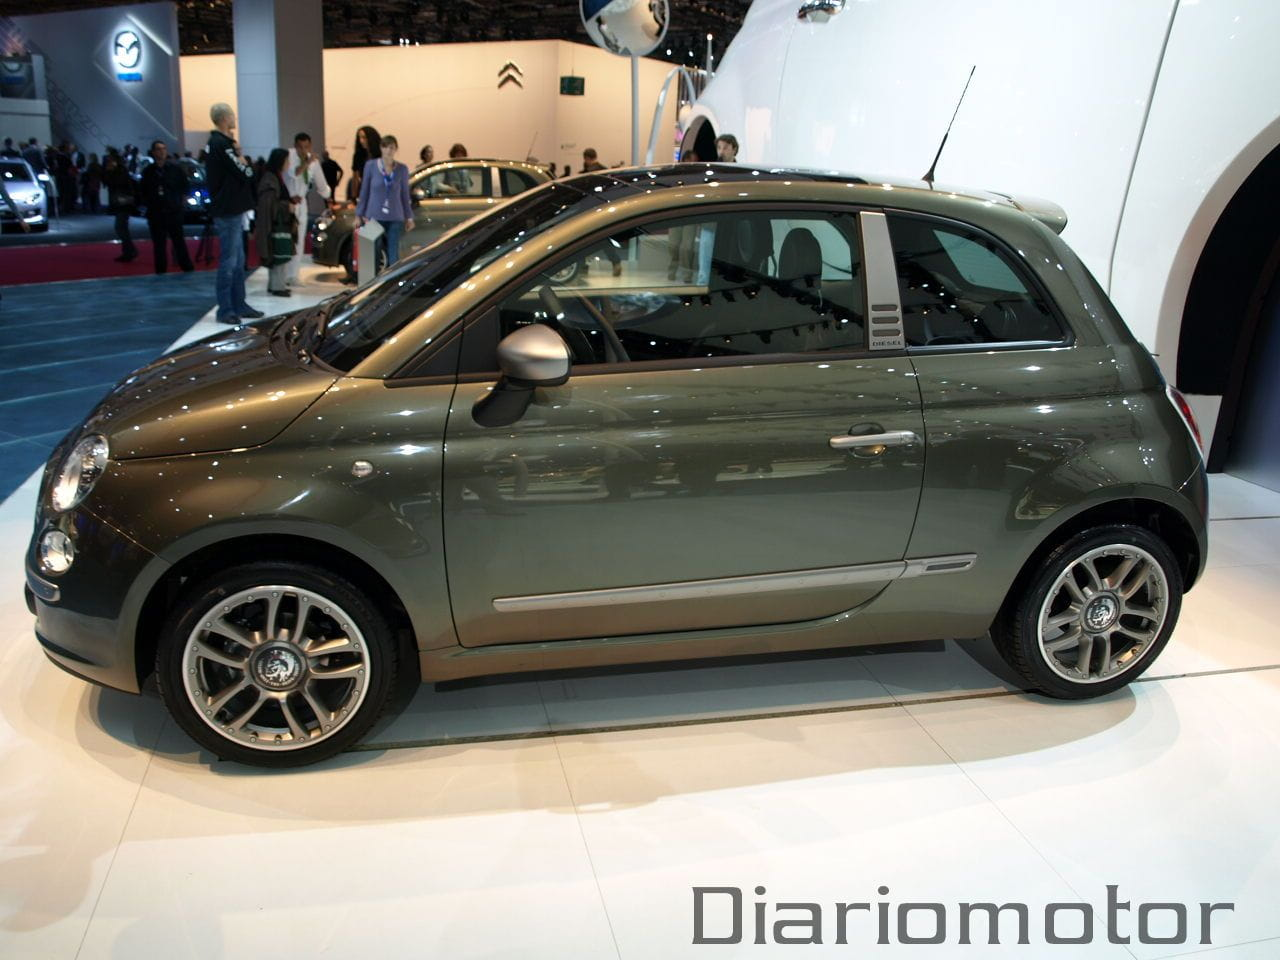 fiat 500 diesel en par s 2008 foto 13 de 13. Black Bedroom Furniture Sets. Home Design Ideas